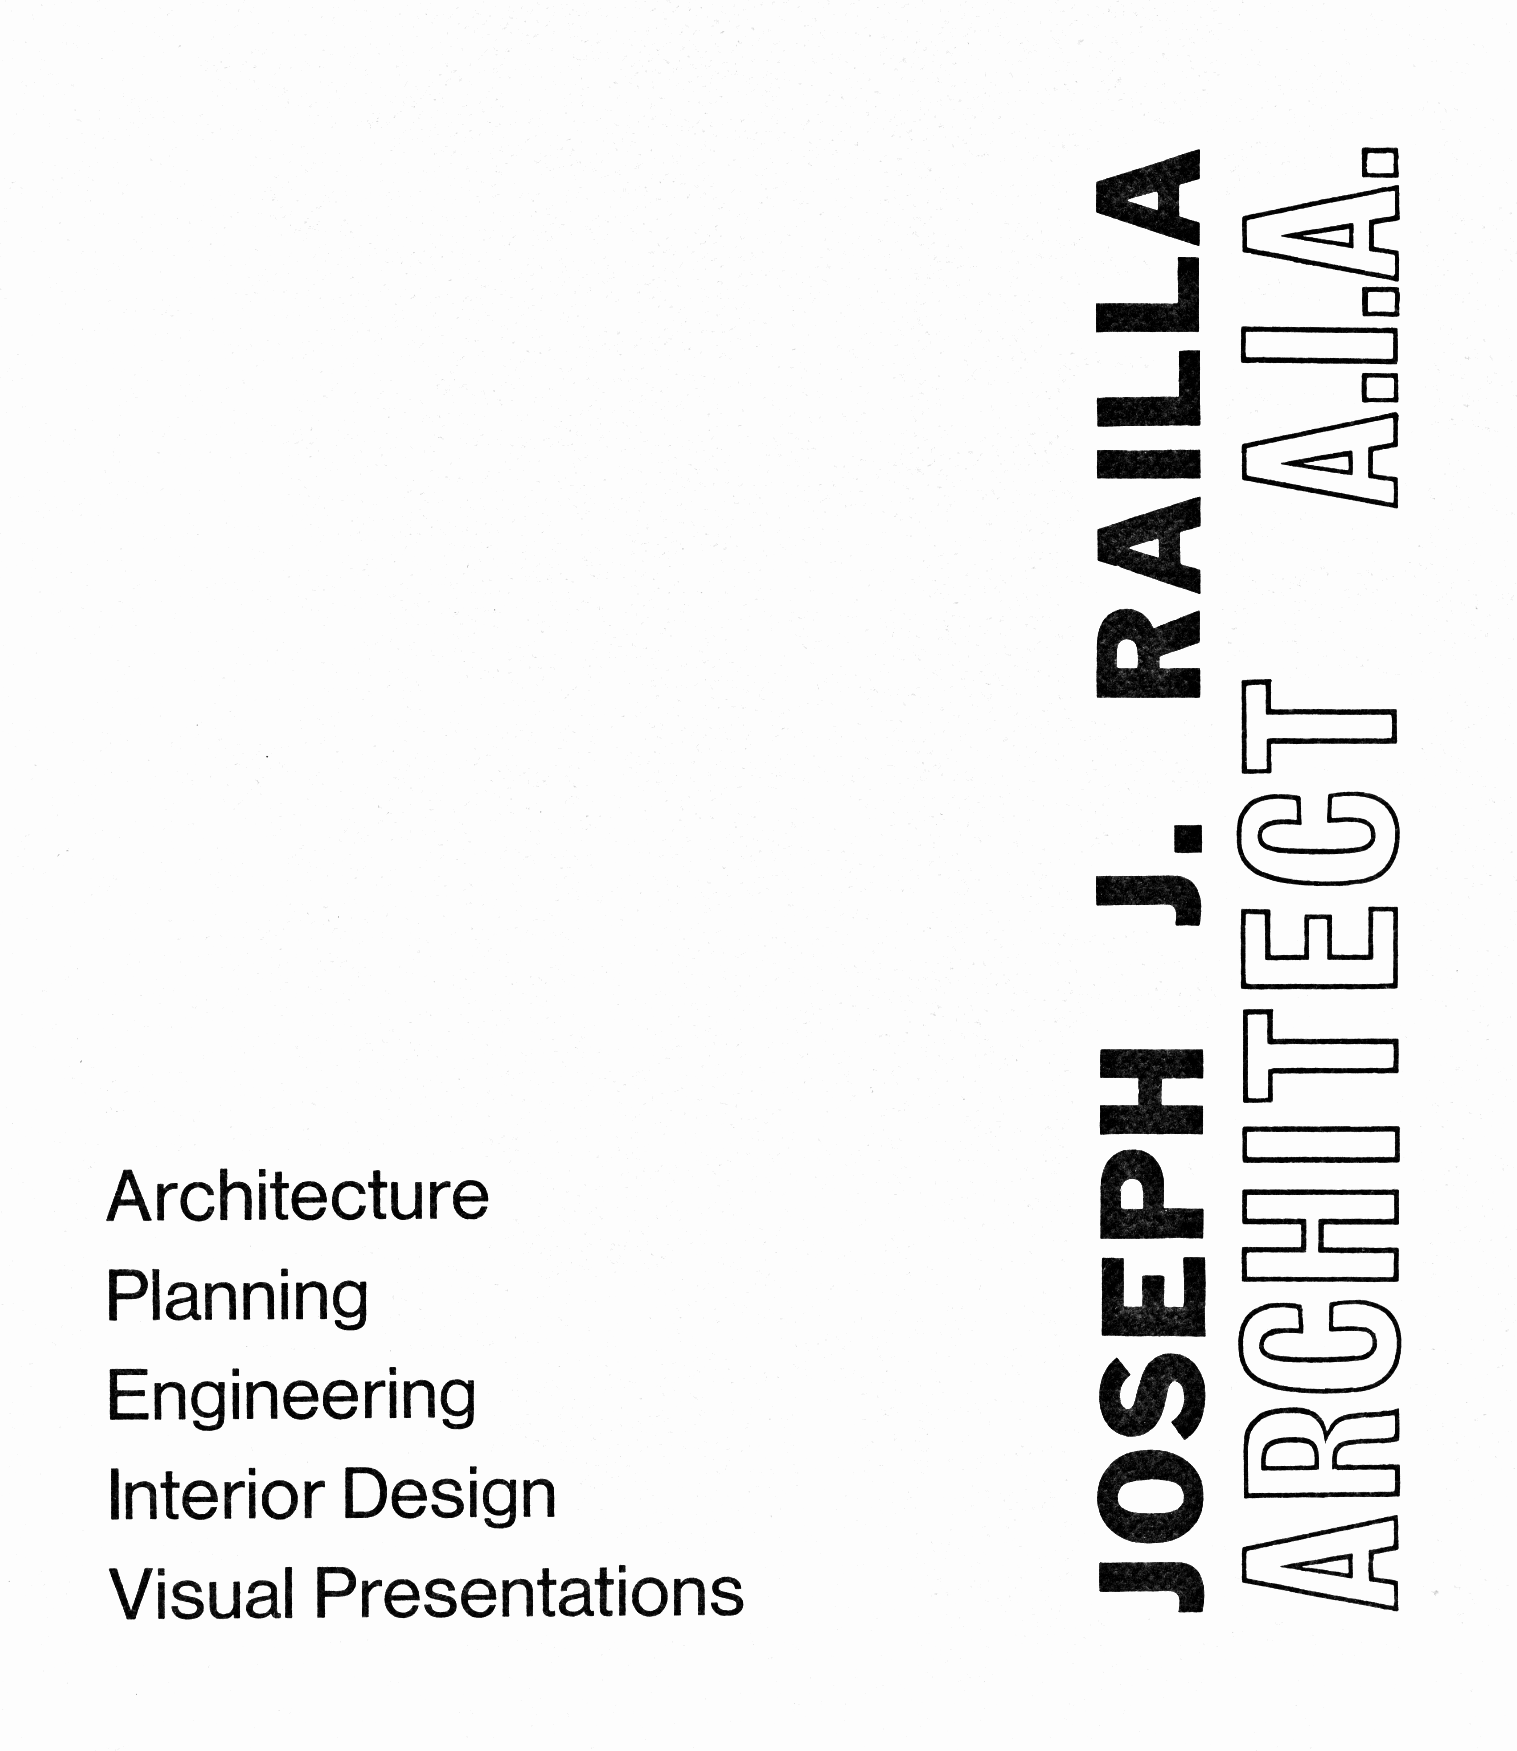 Joseph J. Railla Architect A.I.A.